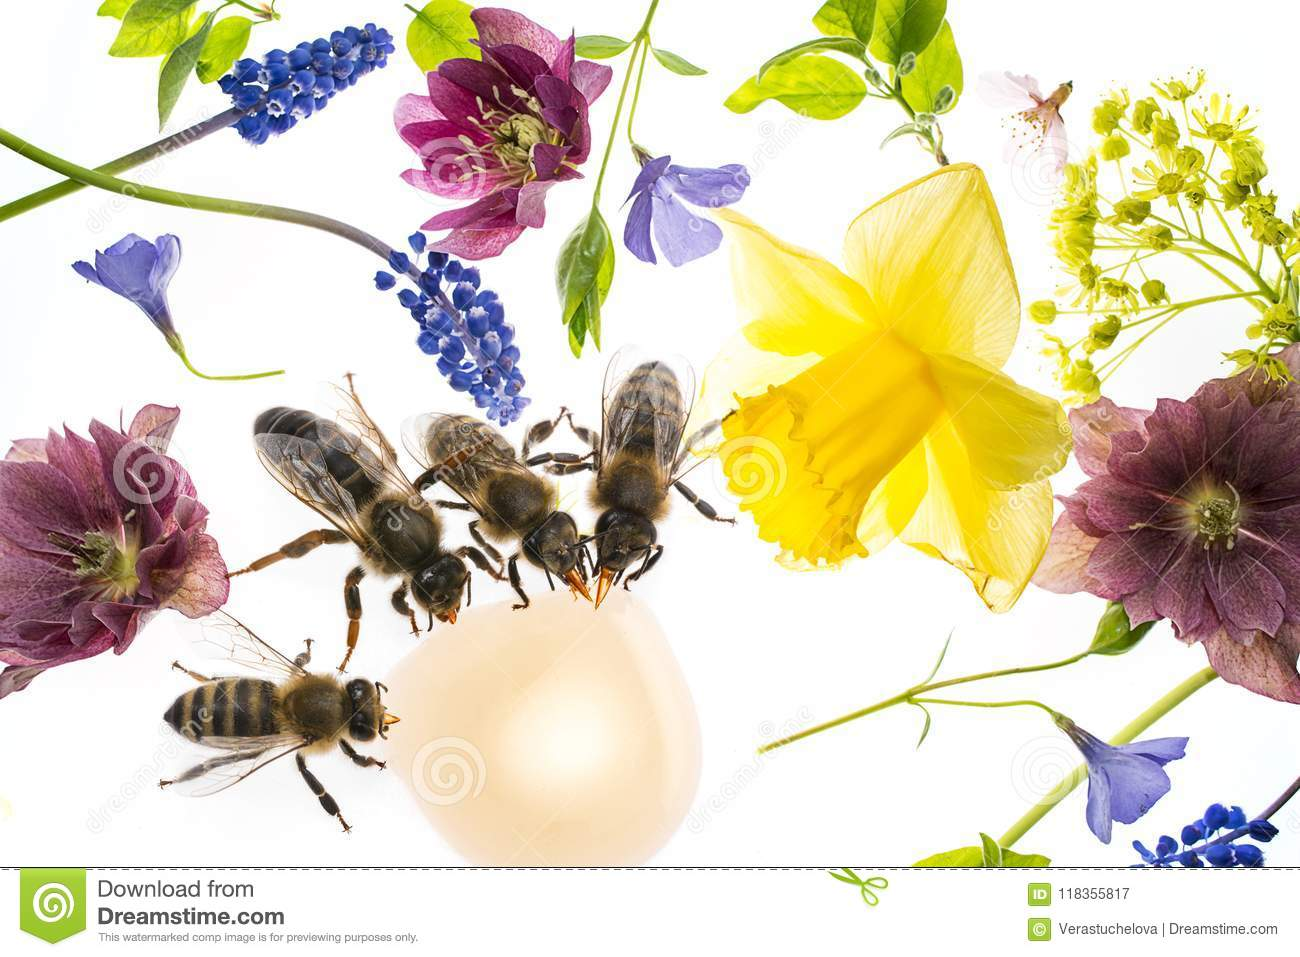 Spring flowers and bees stock image image of foliage 118355817 download spring flowers and bees stock image image of foliage 118355817 mightylinksfo